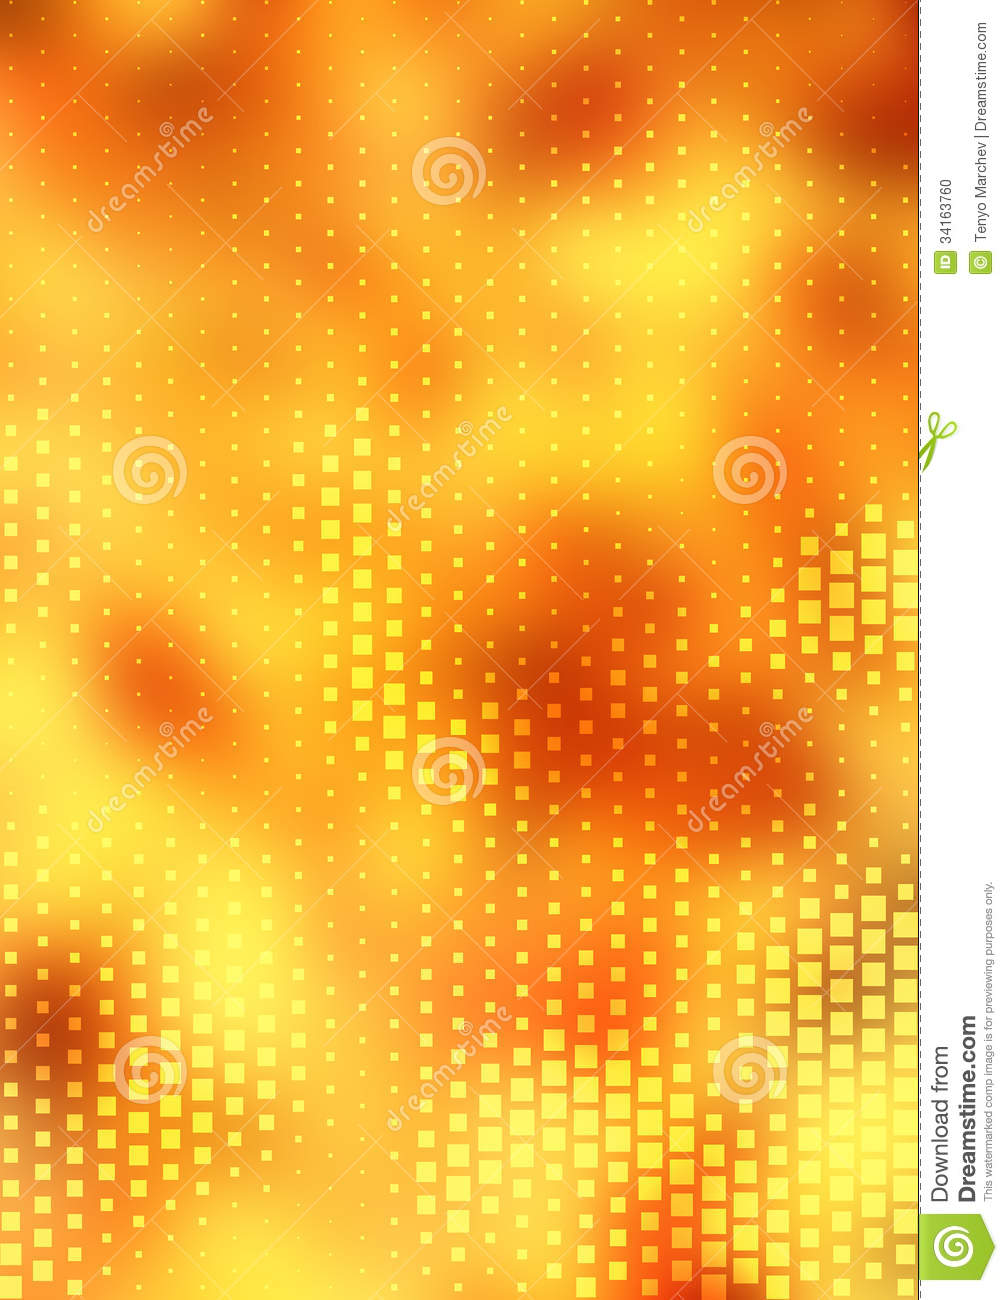 Background Design Stock Photo - Image: 34163760: www.dreamstime.com/stock-photo-background-design-orange-halftone...